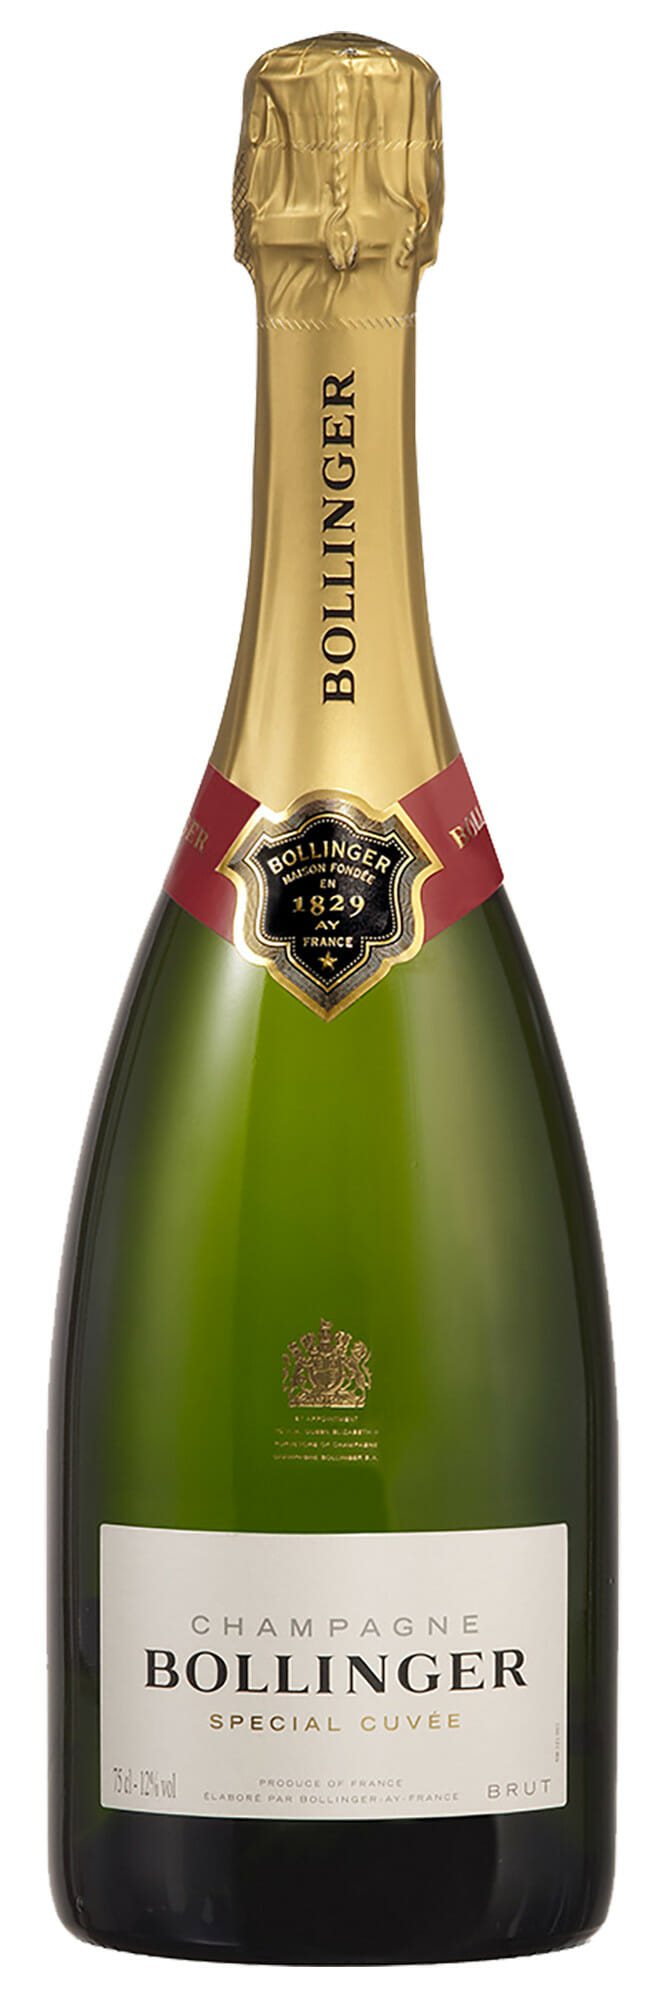 Champagne Bollinger Special Cuvee